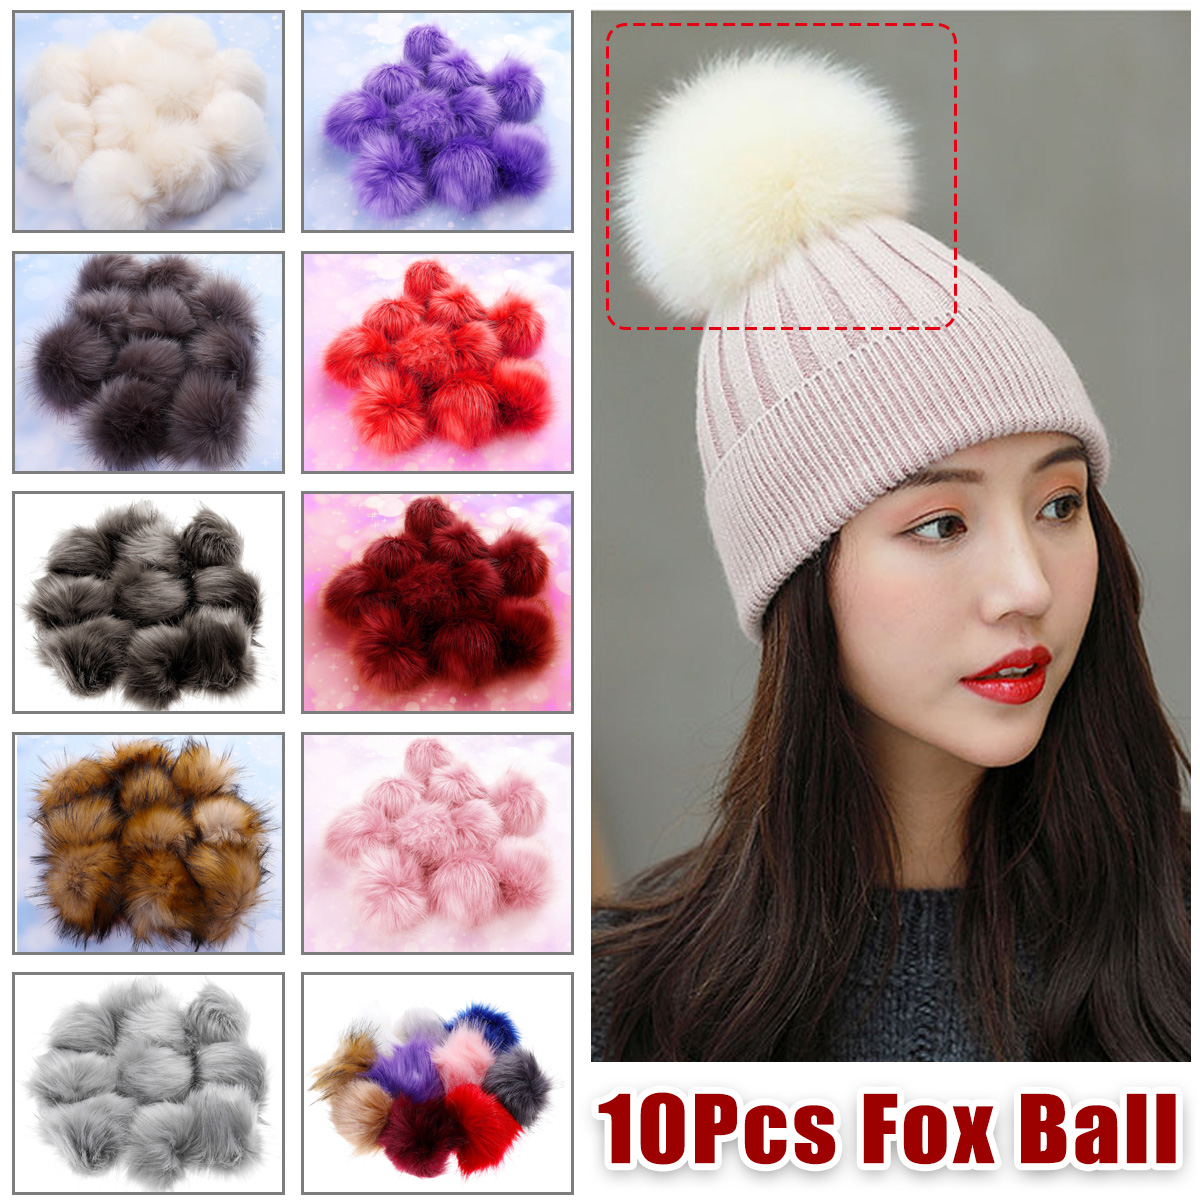 10Pcs 12cm DIY Ball Faux Fox Fur Fluff Balls Cool Colors DIY Knitted Hat Accessories